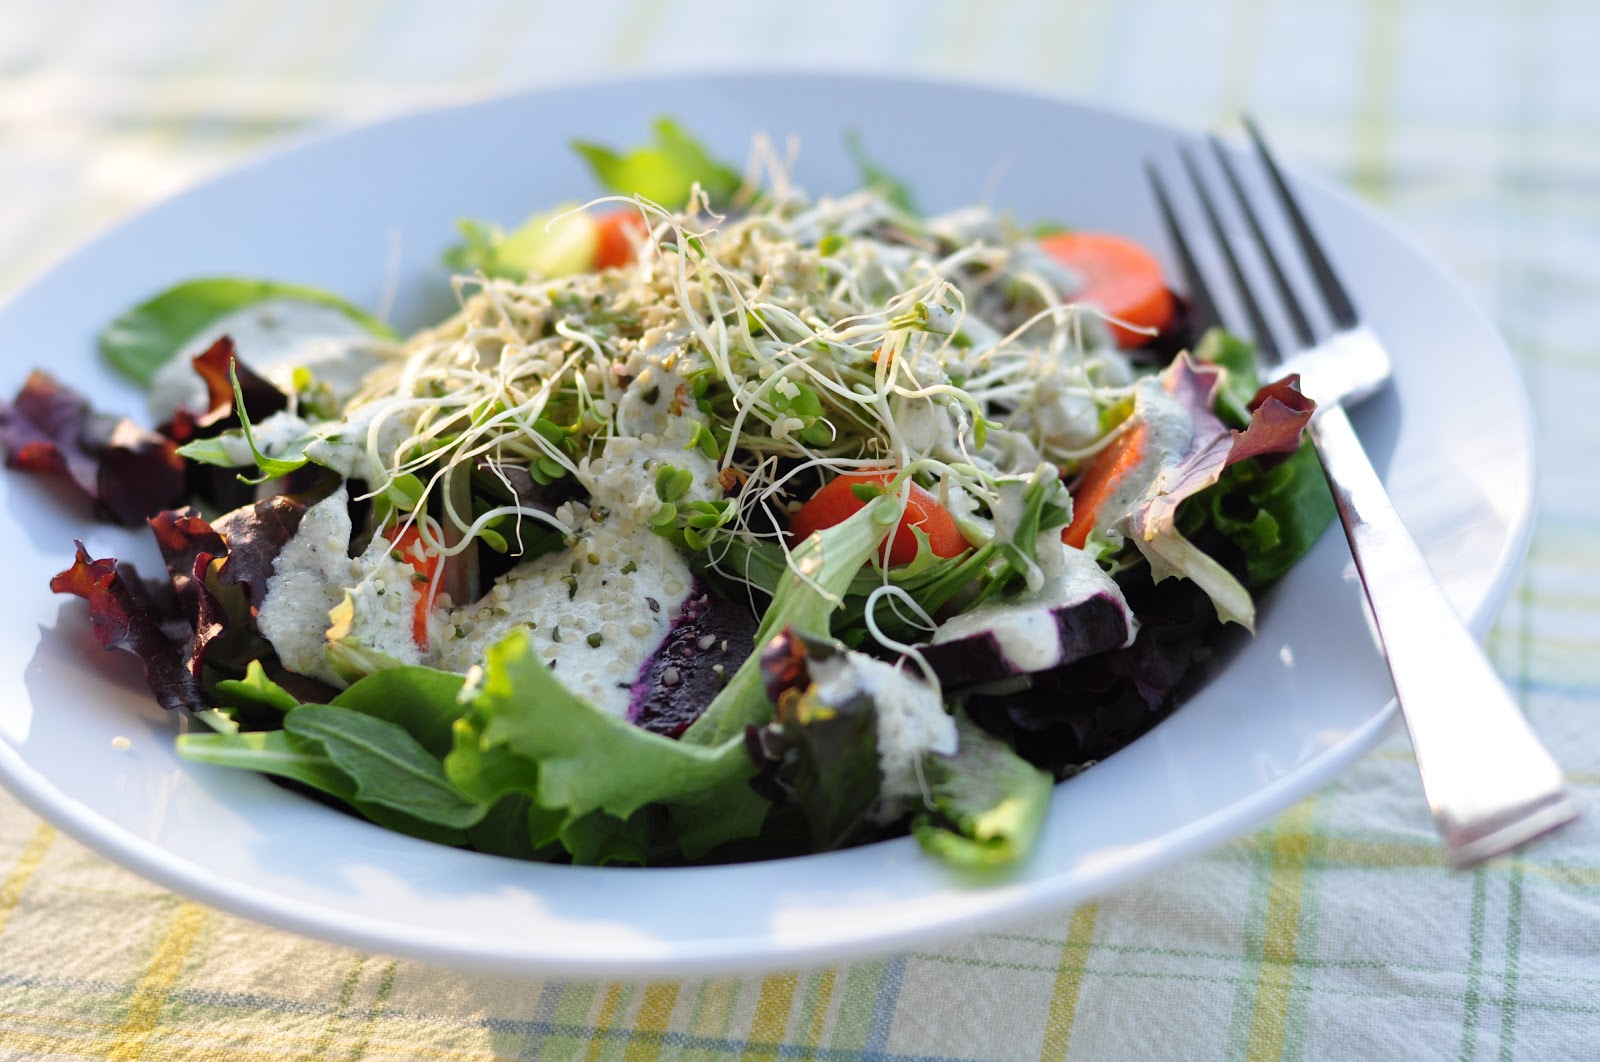 Nourishing Meals: Creamy Herb Sunflower Dressing/Dip